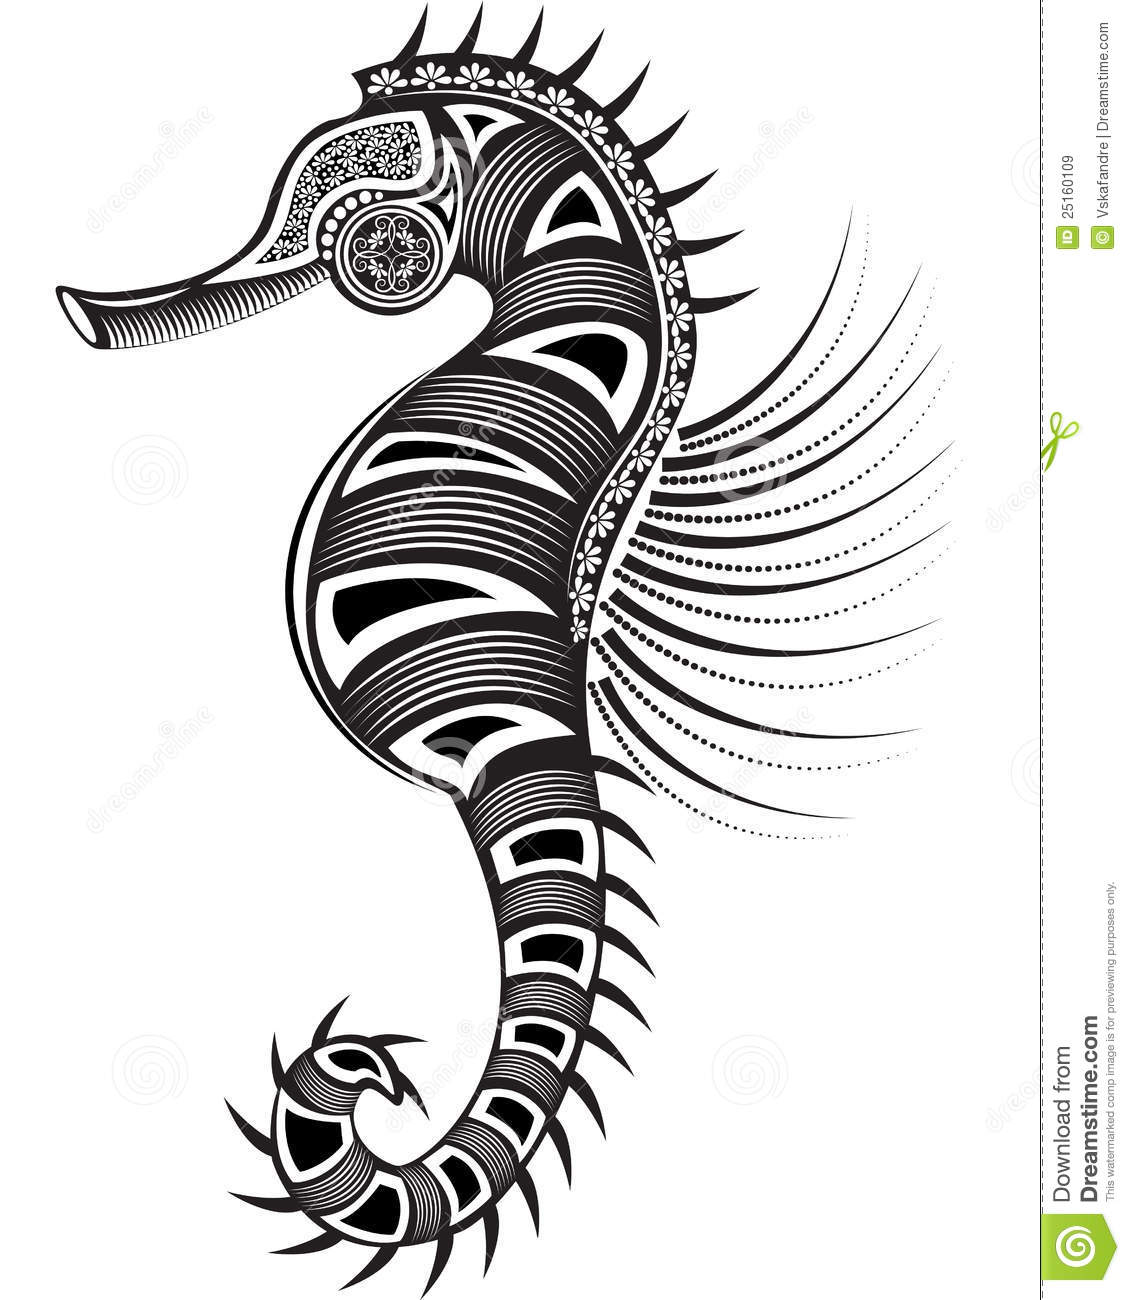 sea horse royalty free stock images image 25160109